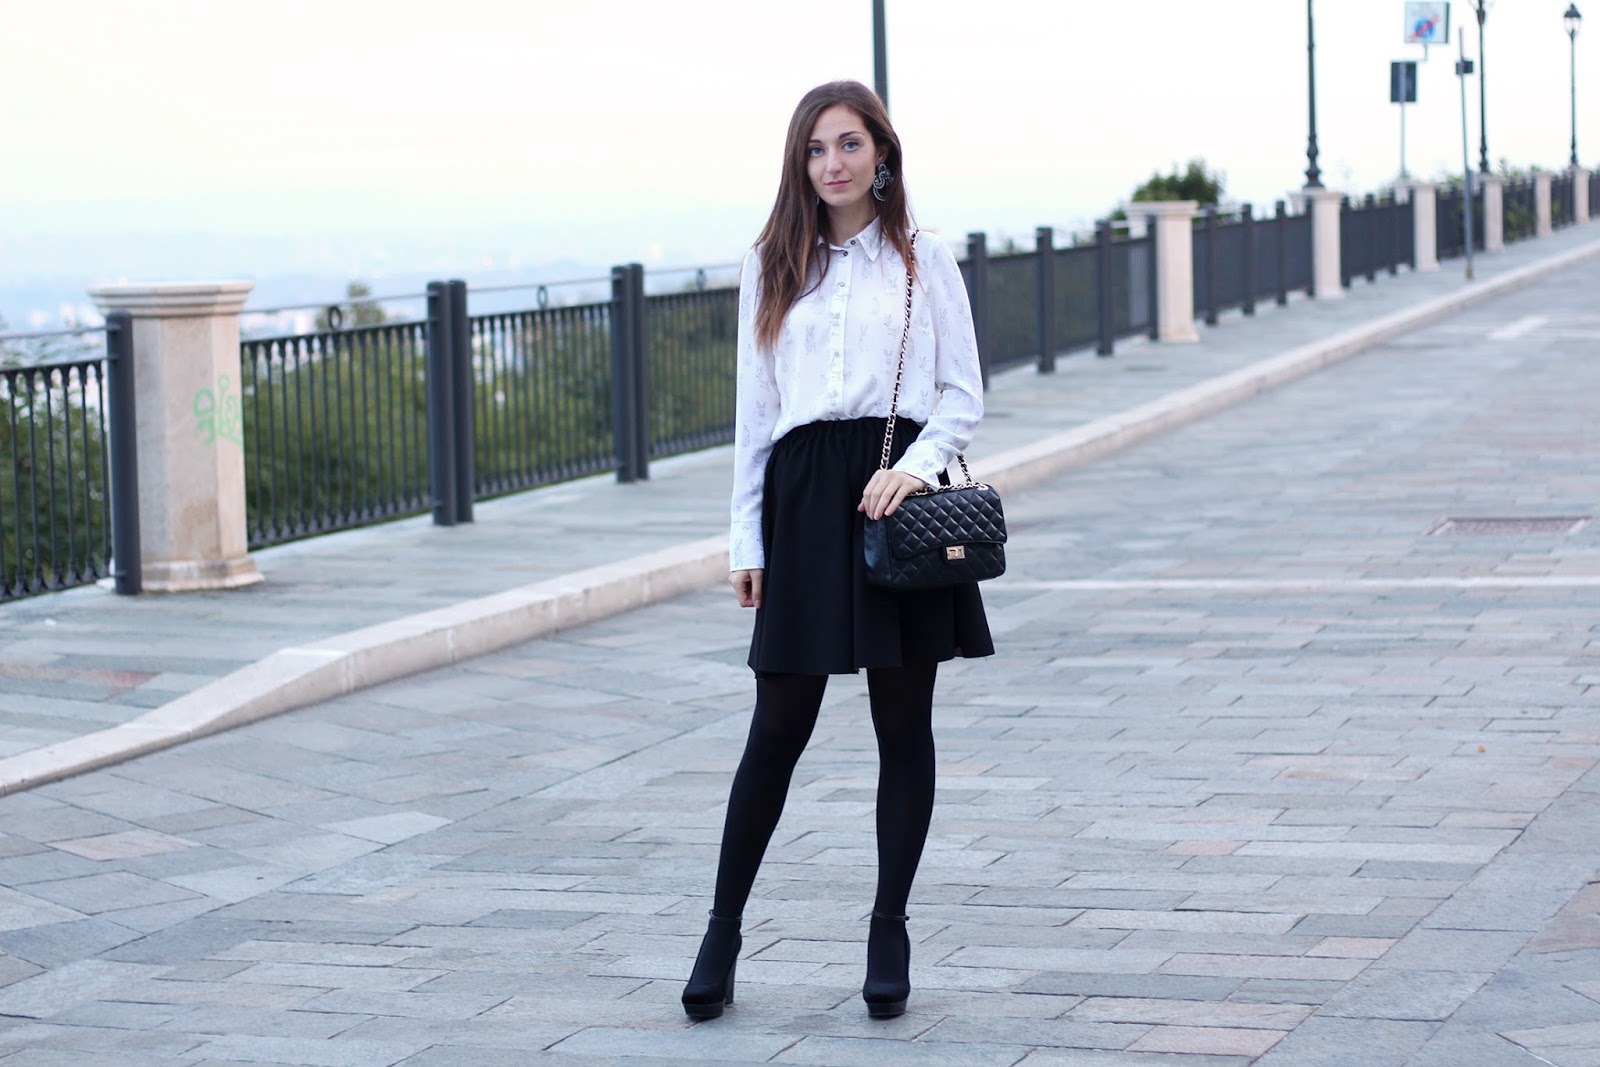 fashion blogger outfit ootd zara skirt adels laboratory soutache earrings rabbit shirt h&m shoes wedge